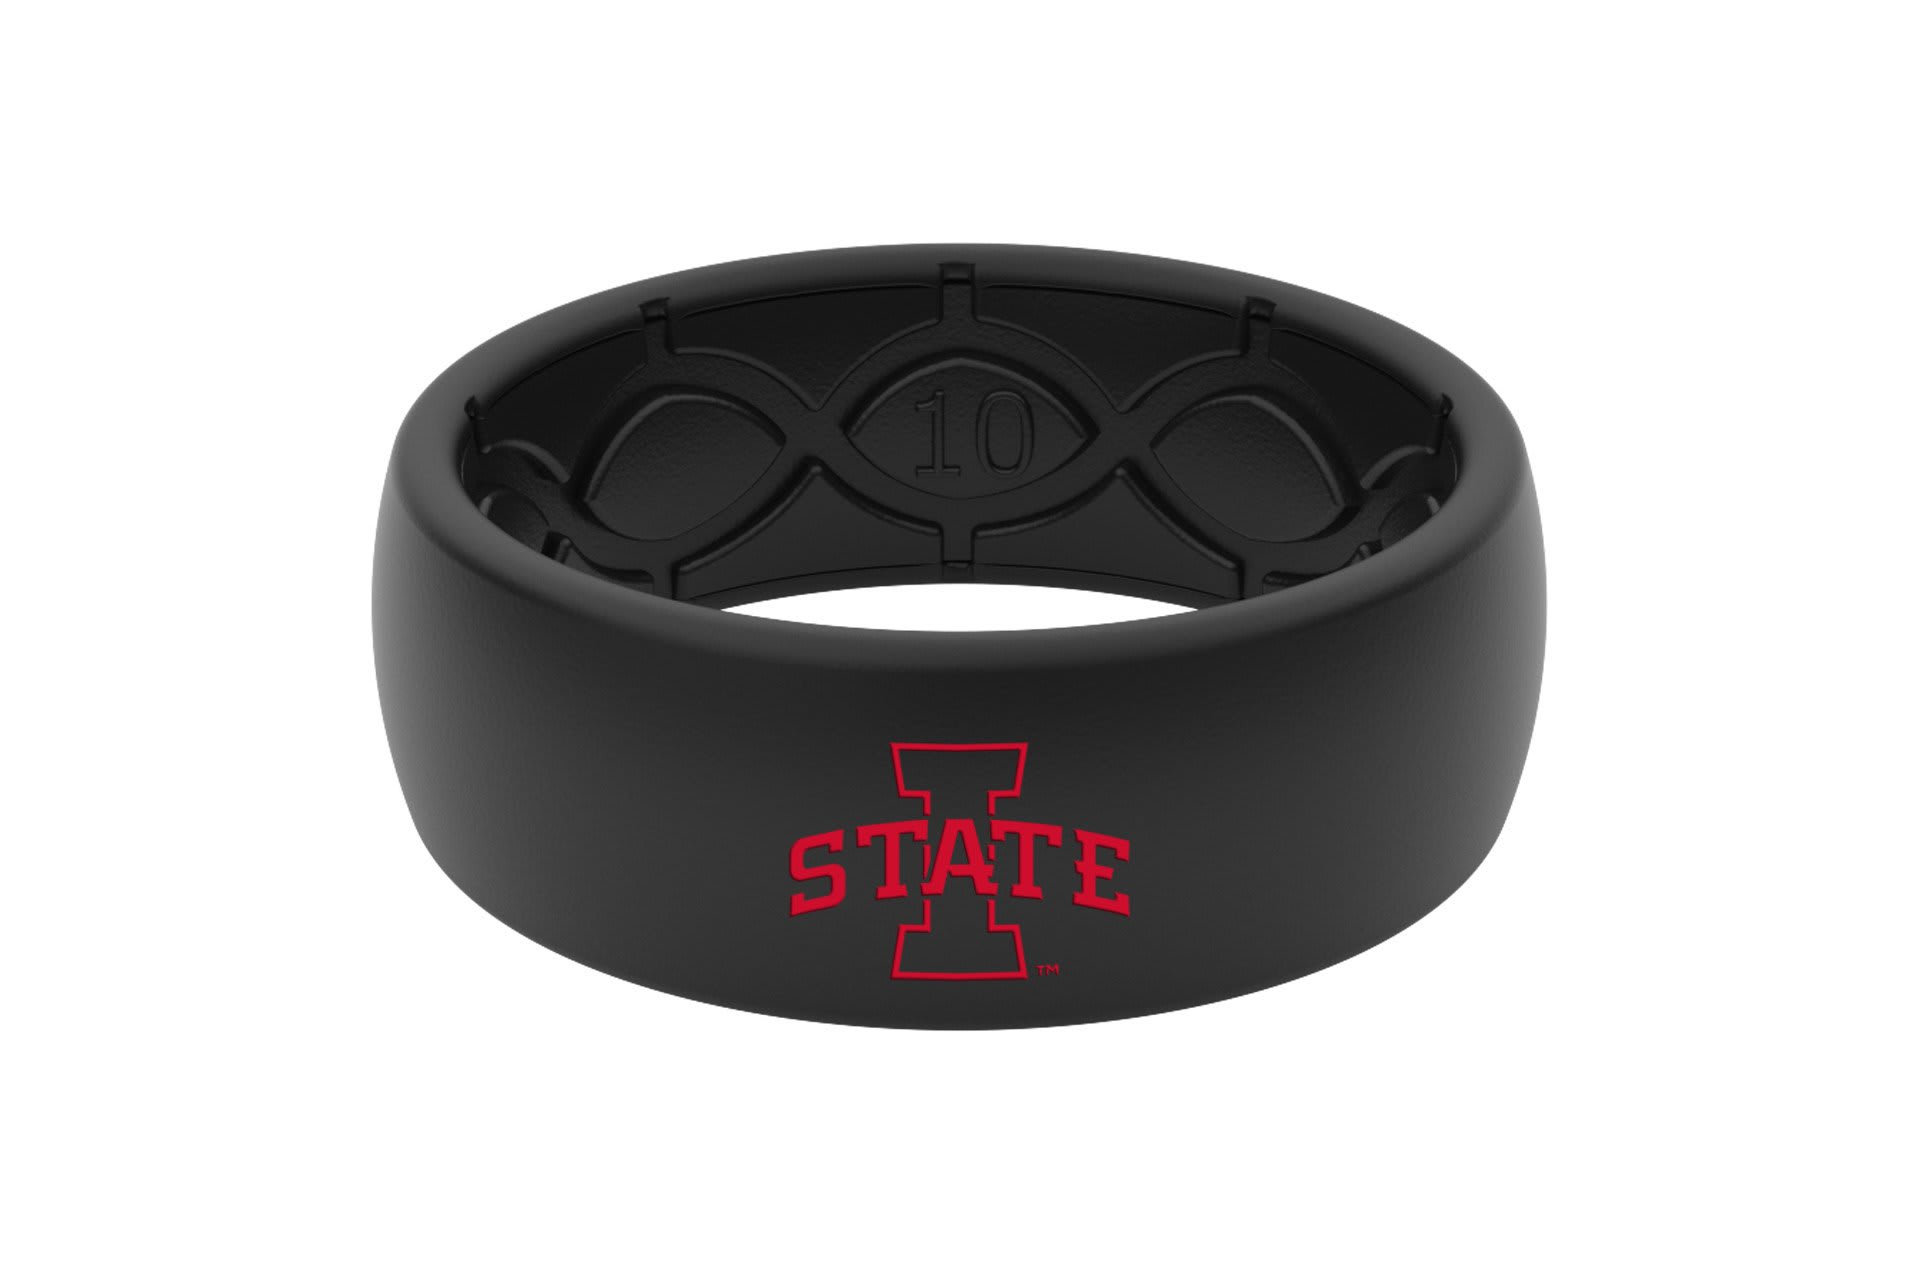 Original College Iowa State Black Color Fill  viewed front on